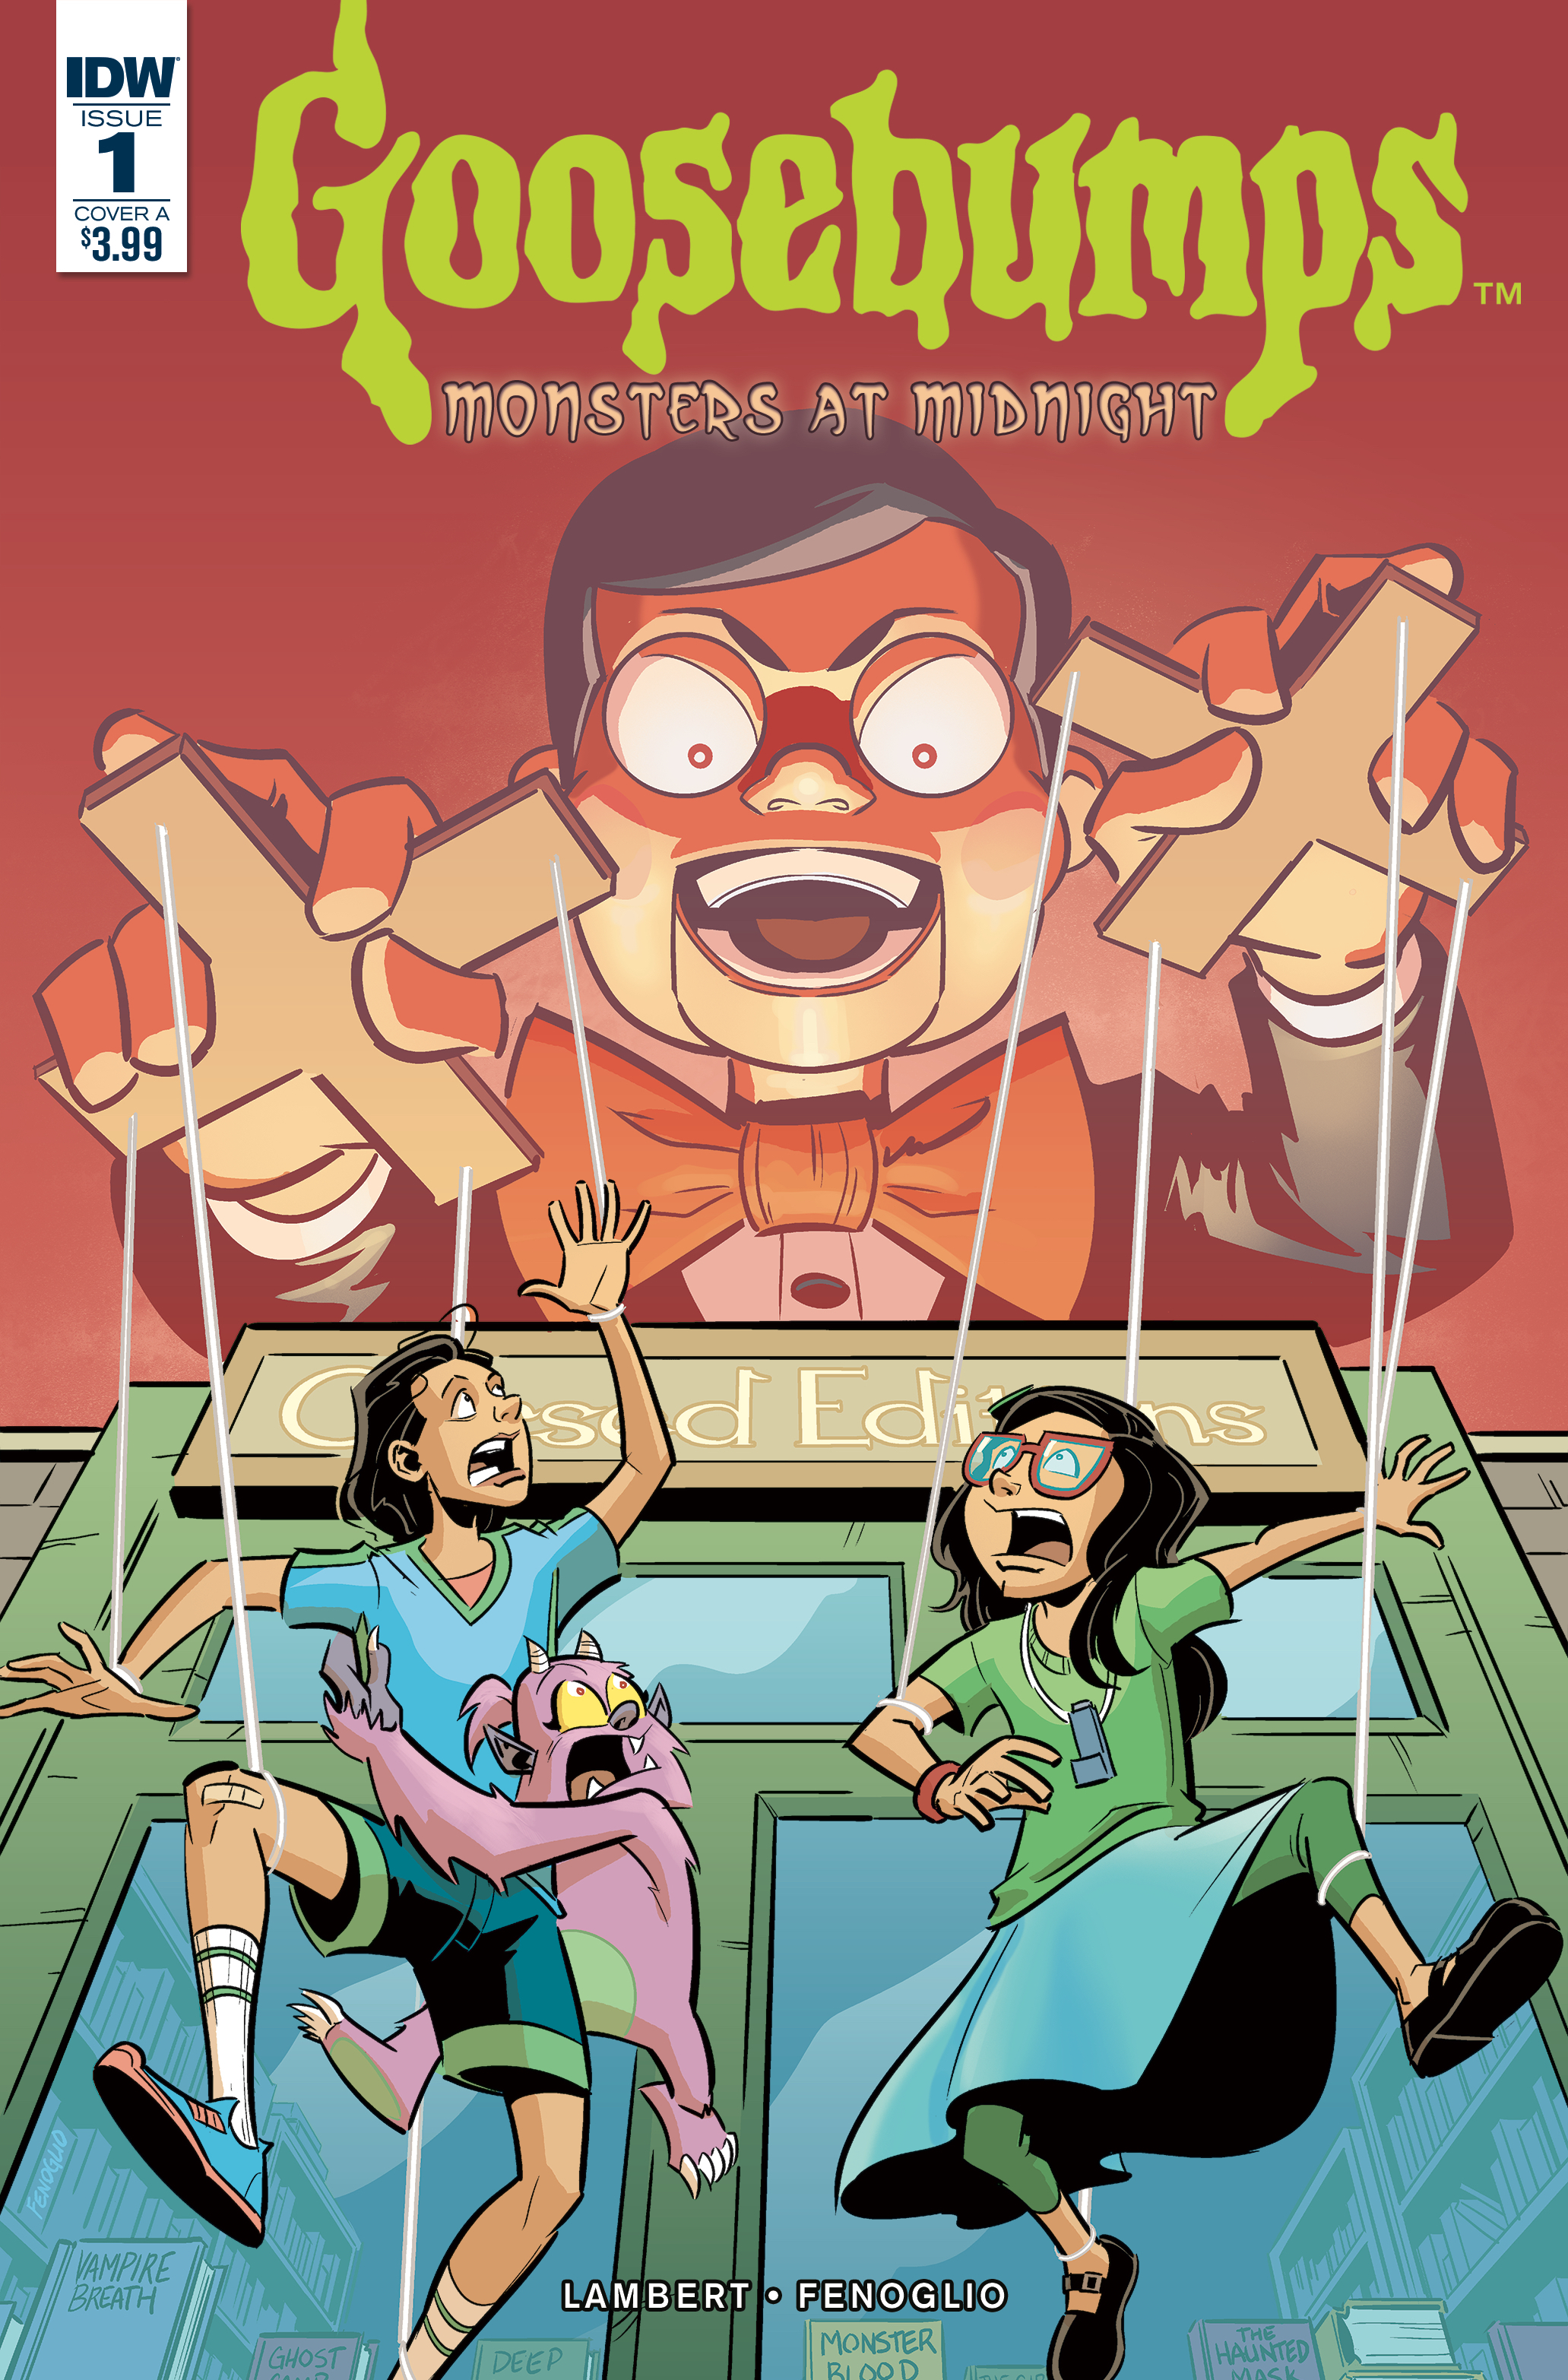 GOOSEBUMPS MONSTERS AT MIDNIGHT #1 (OF 3) CVR A FENOGLIO